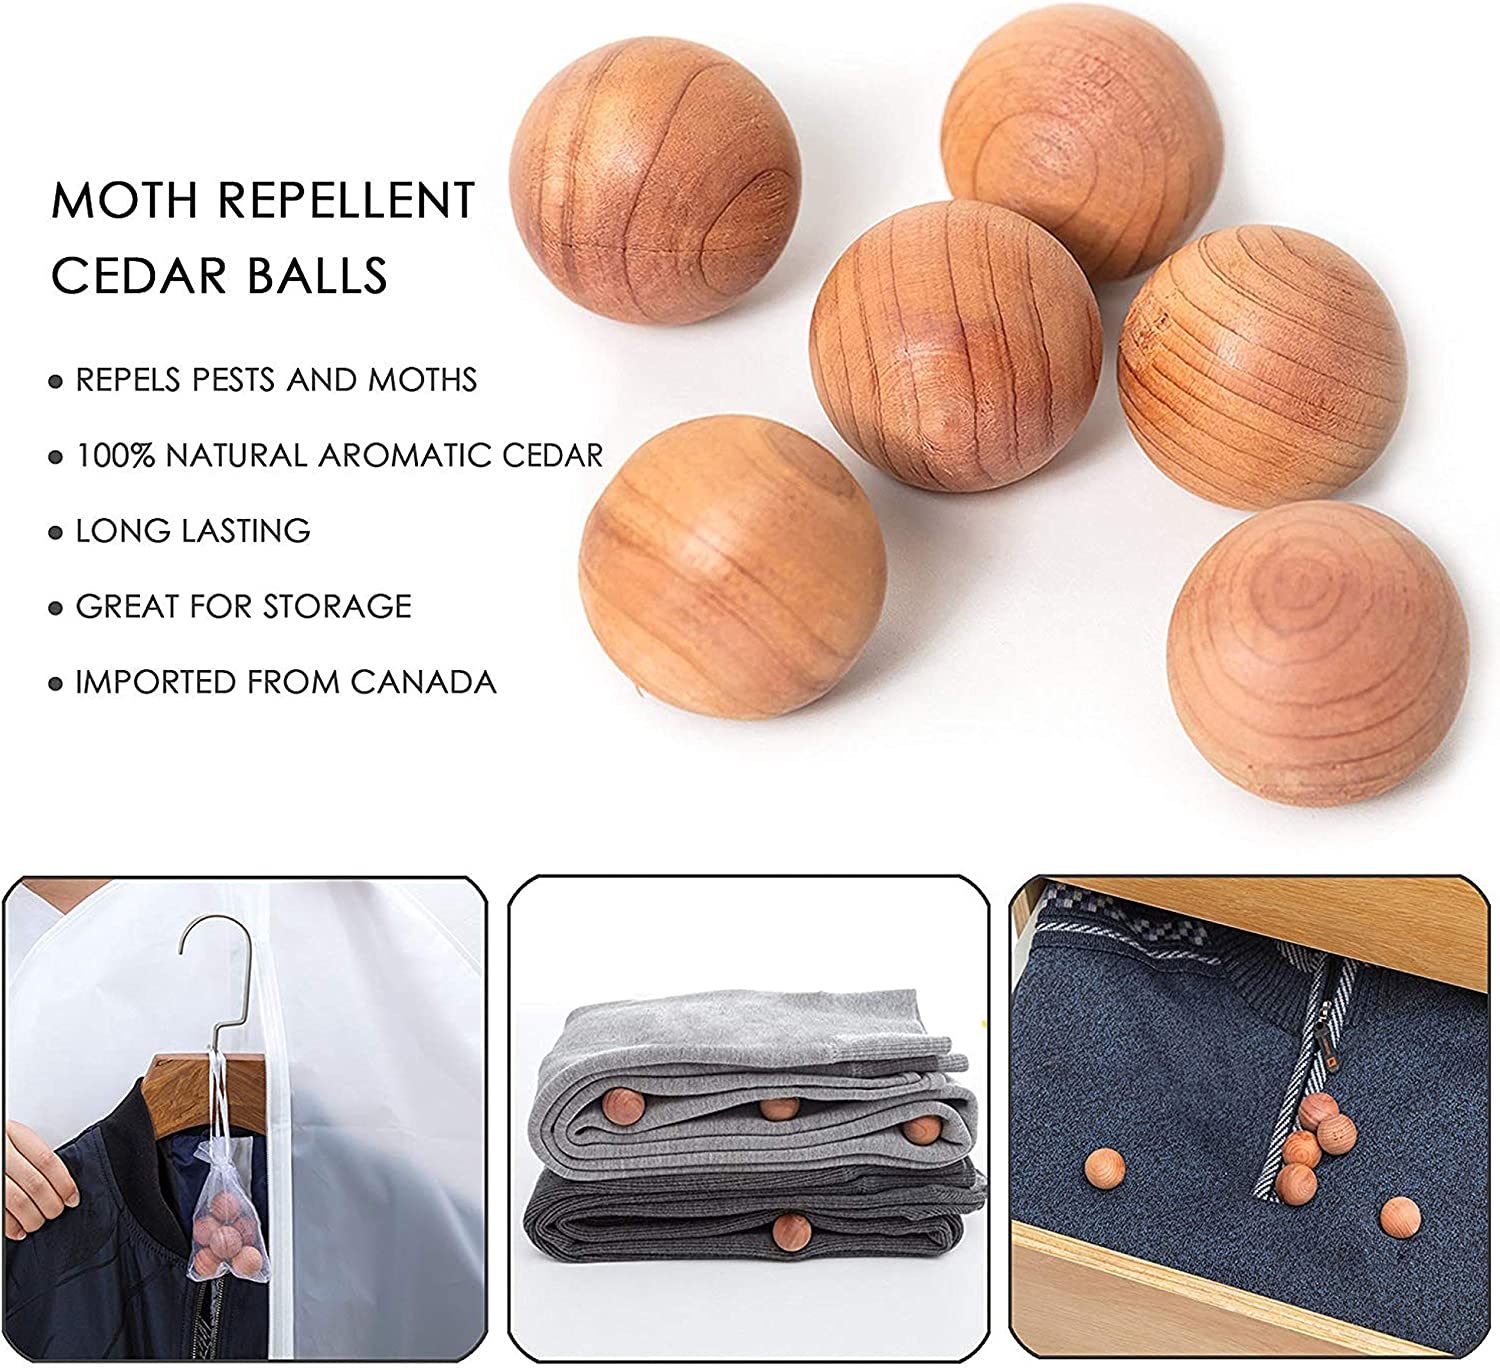 allhom Hanging Garment Bag for Storage Travel Suit Bag Sturdy Zipper Dust Proof Clothing Bag Pack of 6 with Cedar Ball in 4 Medium and 2 Large